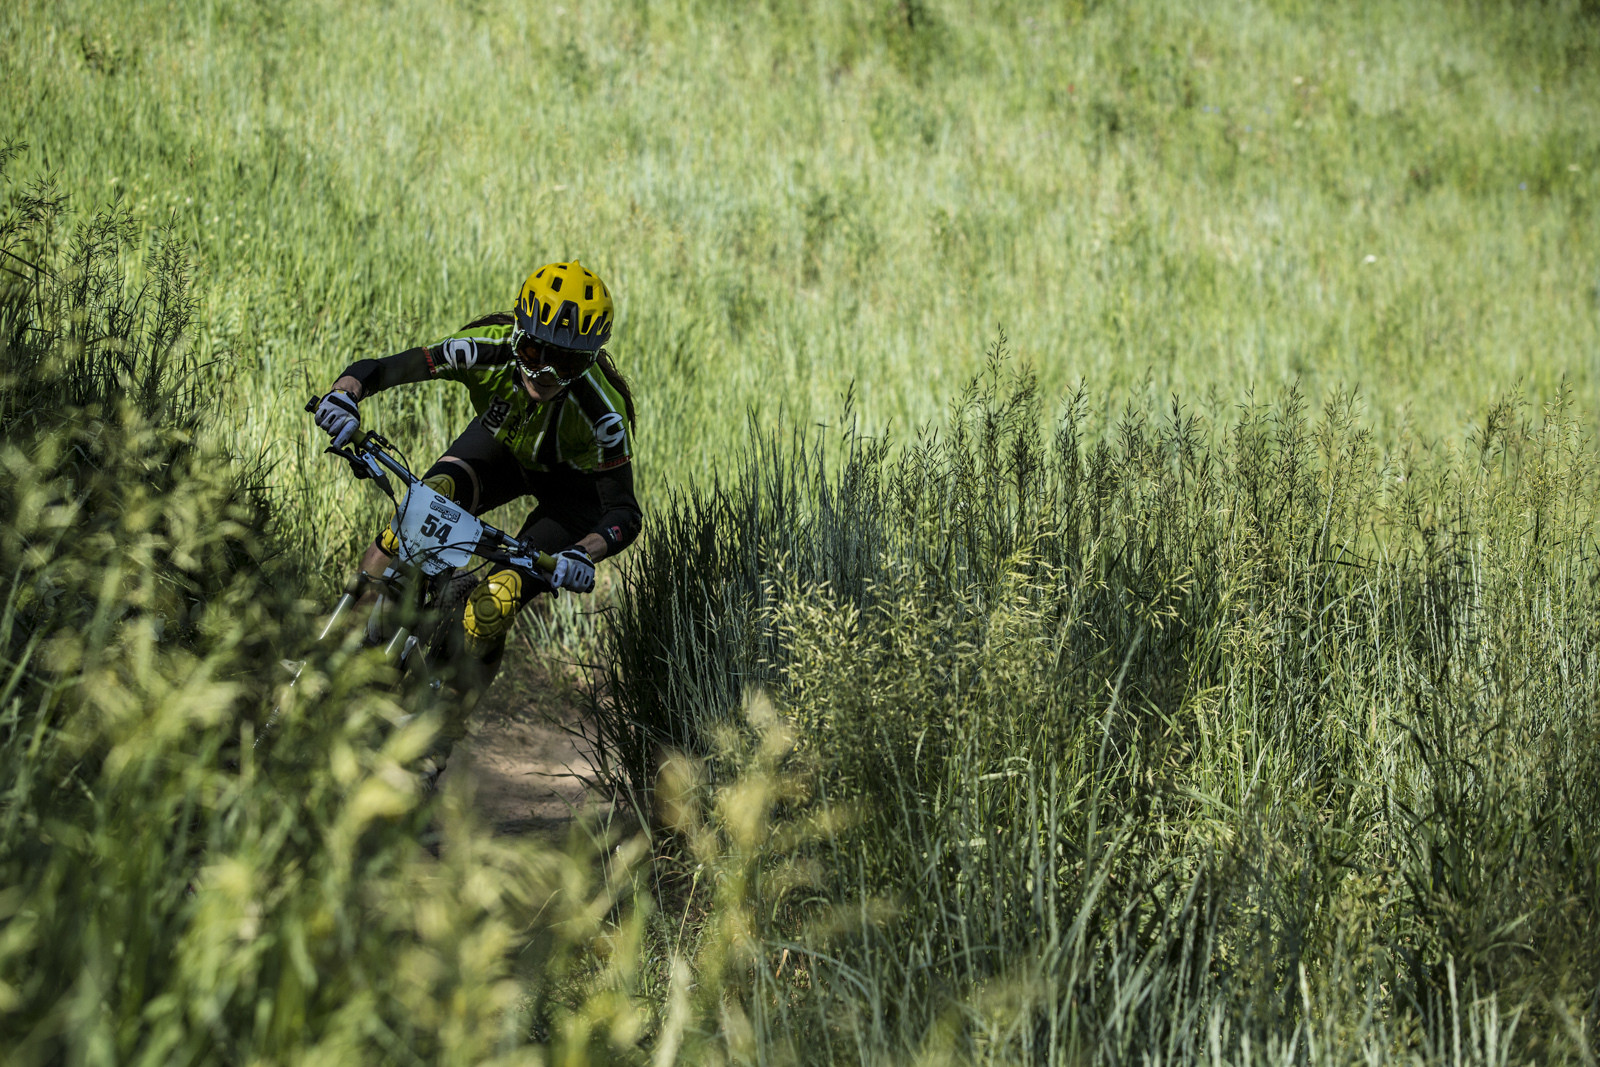 Krista Park, 2nd Place Bell Enduro Cup at Canyons - Race Report, Photos and Video: Bell Enduro Cup at Canyons Resort - Mountain Biking Pictures - Vital MTB